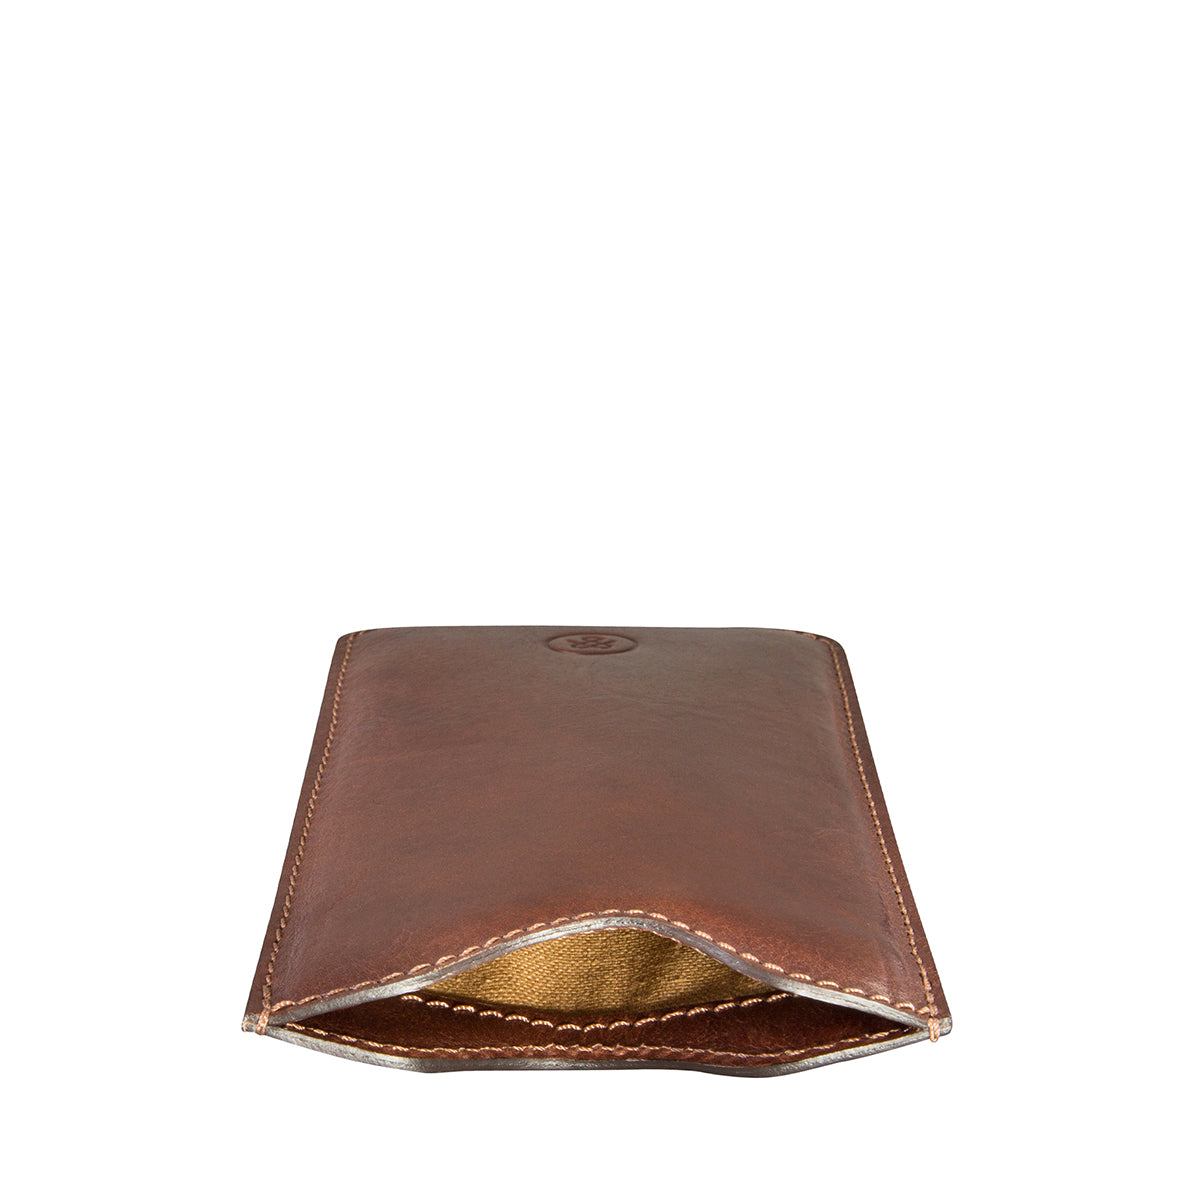 Image 2 of the 'Dosolo' Chestnut Veg-Tanned Leather iPhone 6+ Size Case